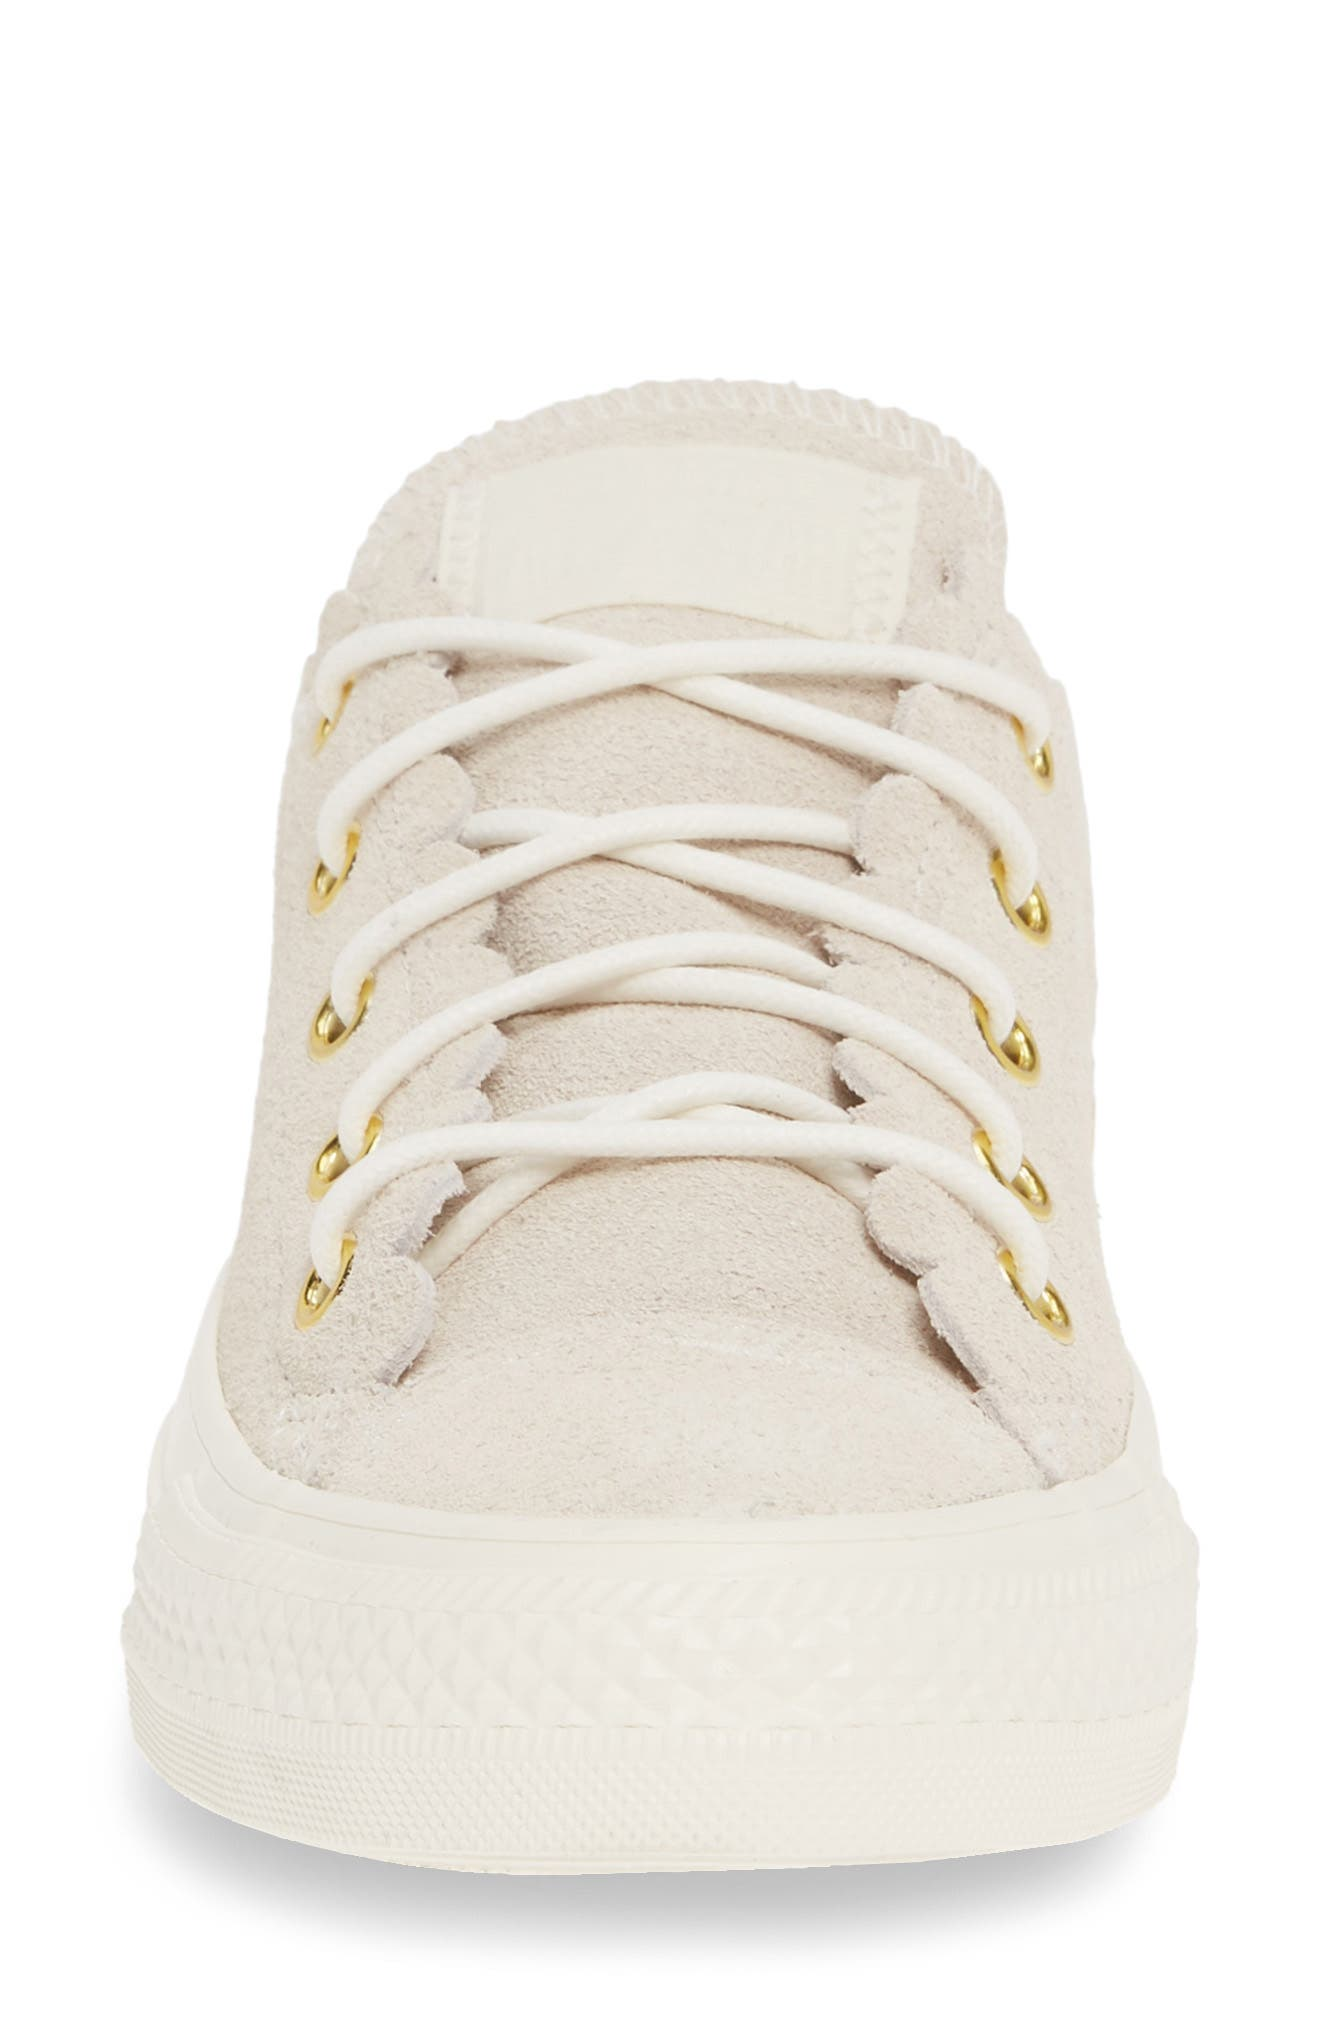 CONVERSE, Chuck Taylor<sup>®</sup> All Star<sup>®</sup> Scallop Low Top Leather Sneaker, Alternate thumbnail 4, color, EGRET/ GOLD/ EGRET